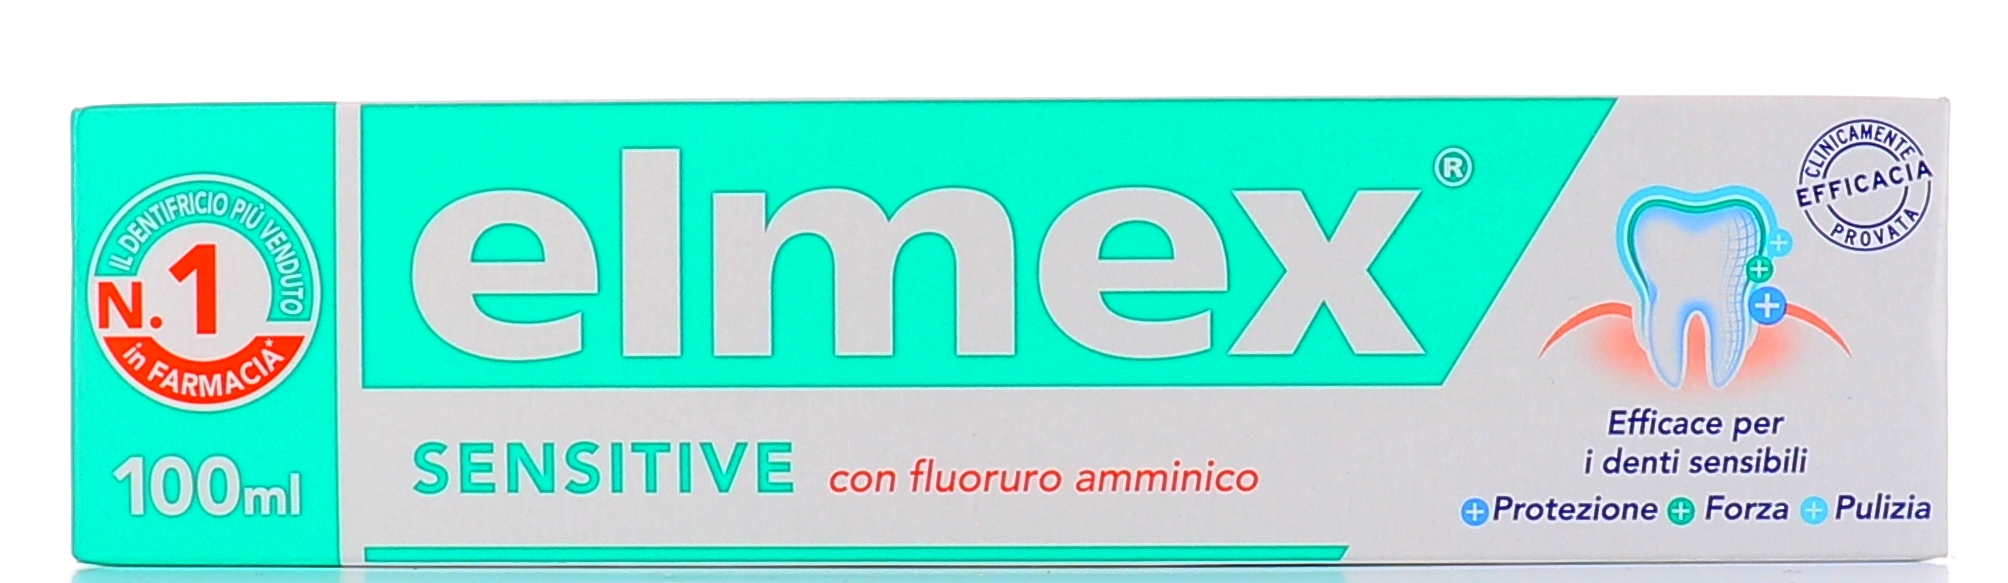 COLGATE PALMOLIVE COMMERC.Srl Elmex Dentifricio Sensitive 100ml